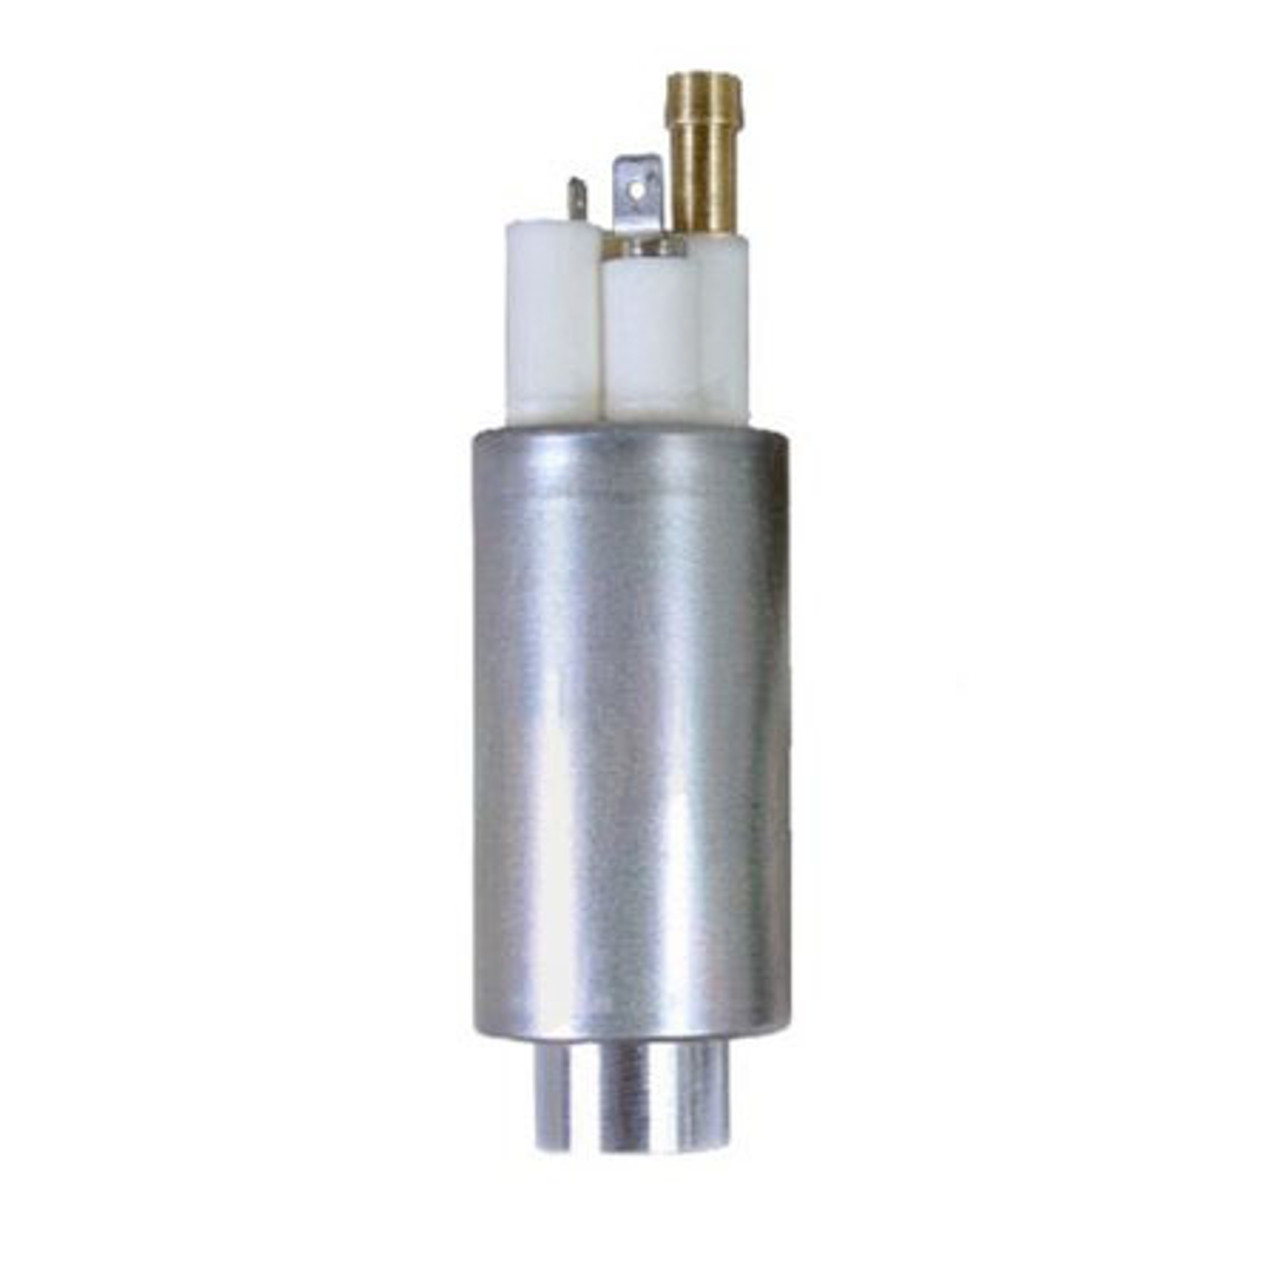 HFP-PPN11 Nissan Tohatsu Nissan 3T1-04302-0 All Years Marine Outboard Fuel Pump Quantum Fuel Systems